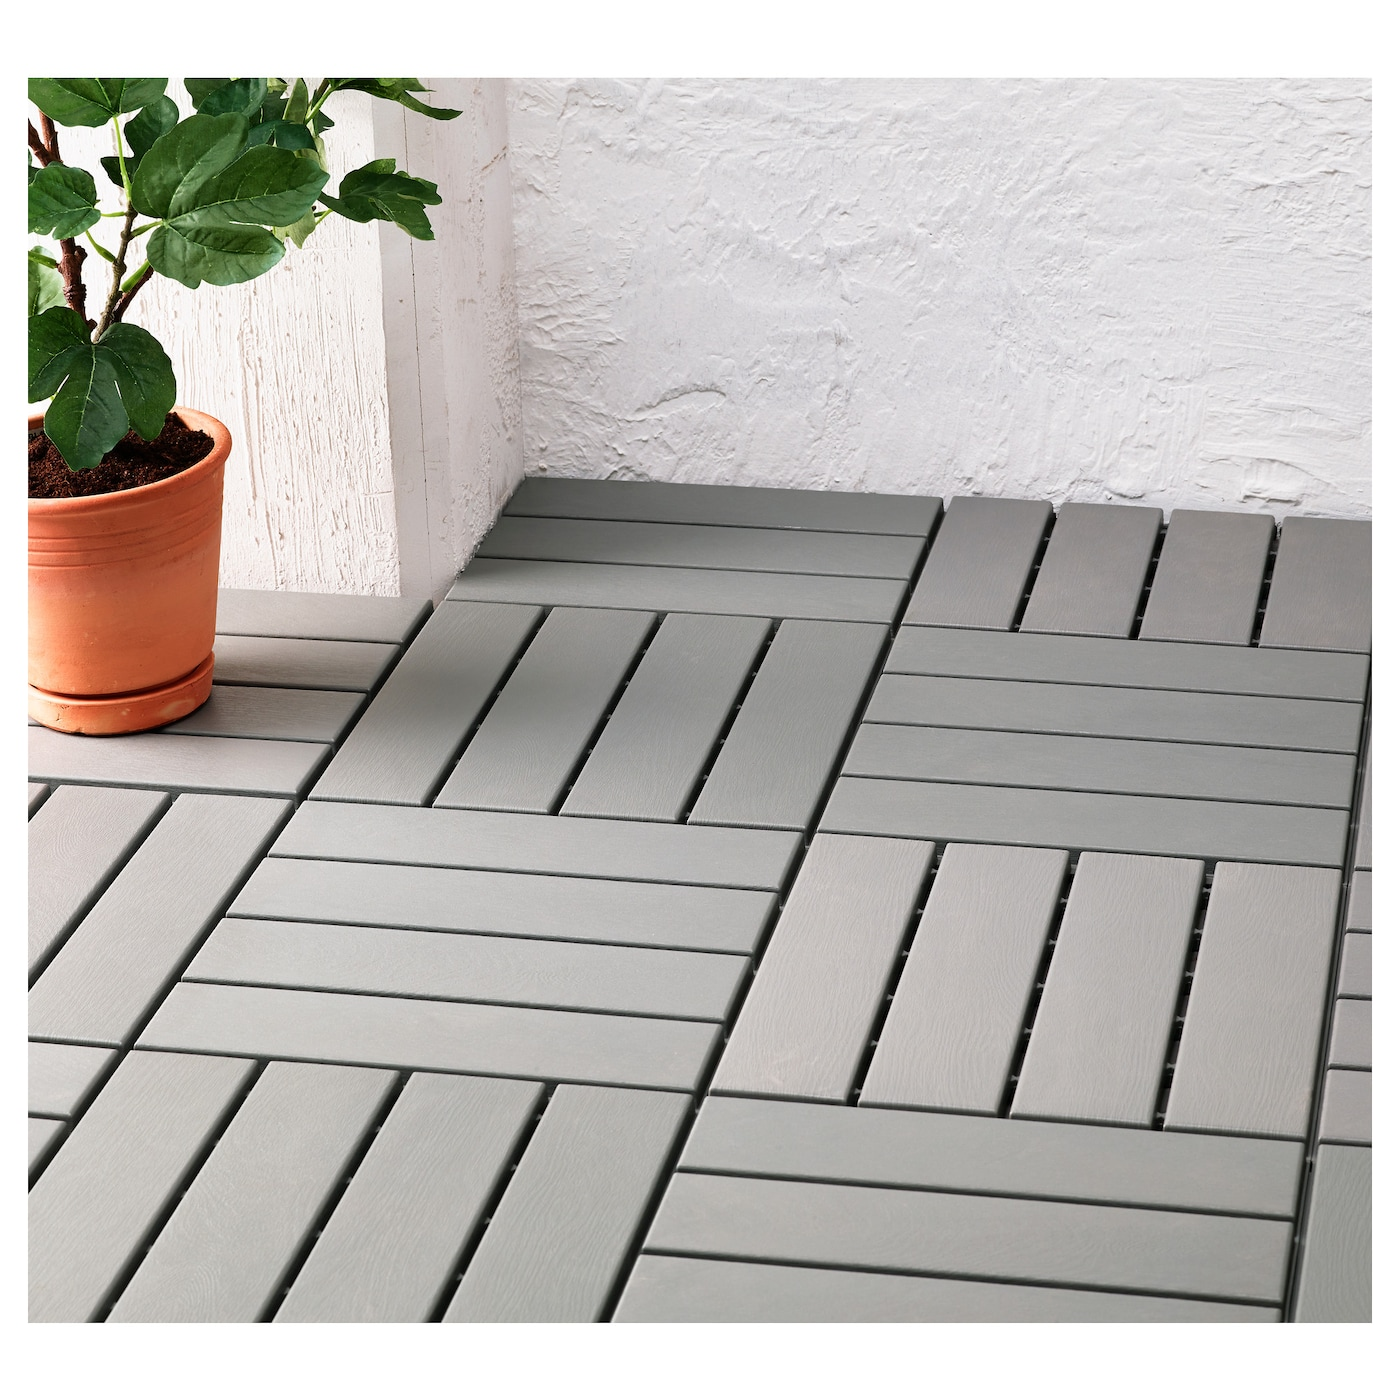 IKEA RUNNEN Floor Decking Outdoor Makes It Easy To Refresh Your Terrace Or